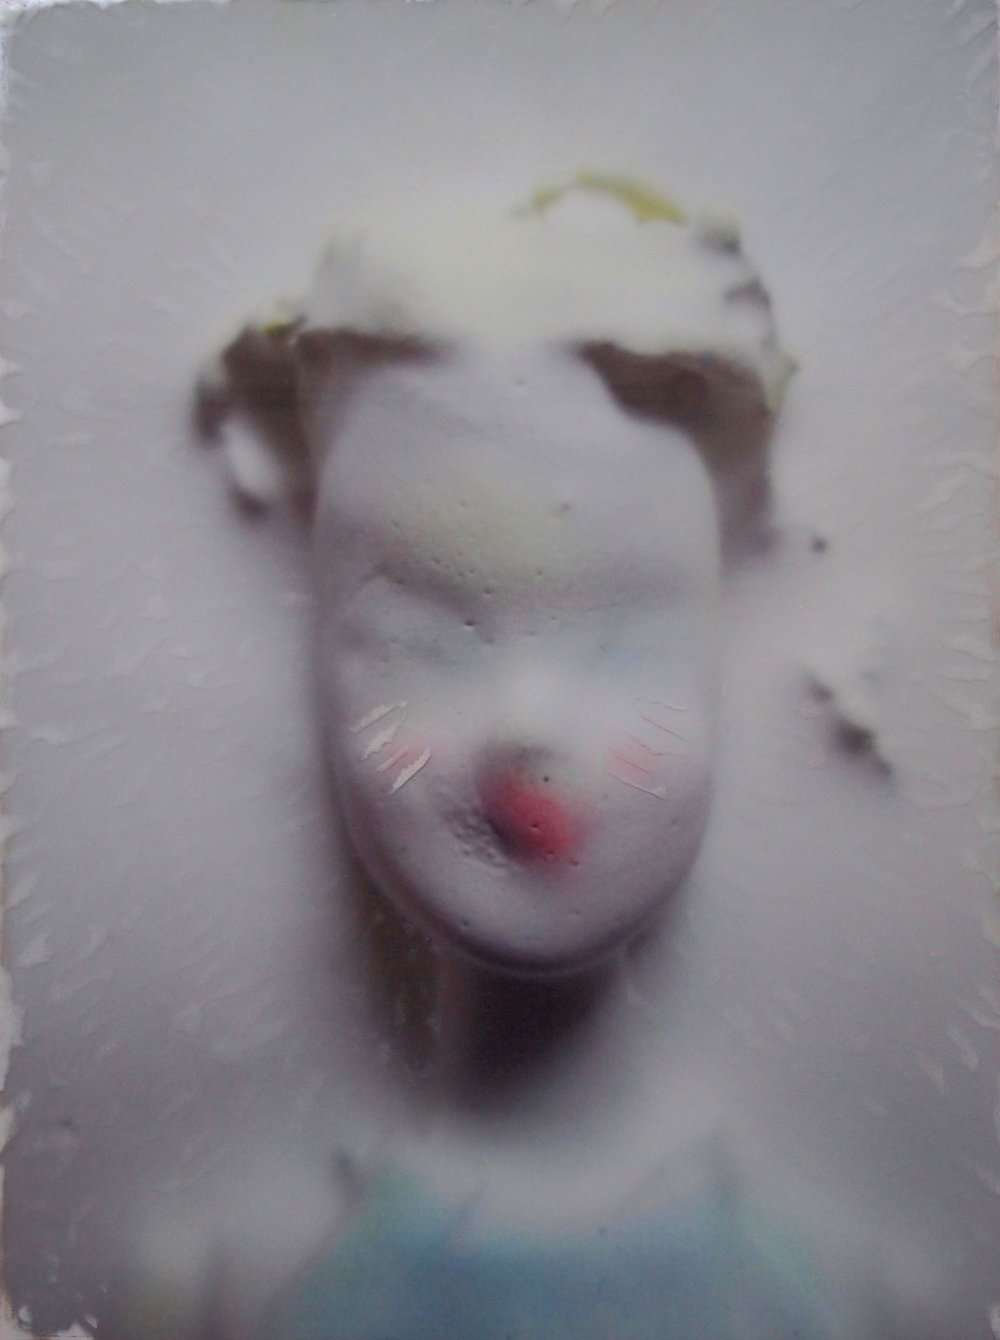 <b>annemarie (lost)</b><br>original photo back printed onto glass, spray paint, acrylic medium<br>29 x 22 in.